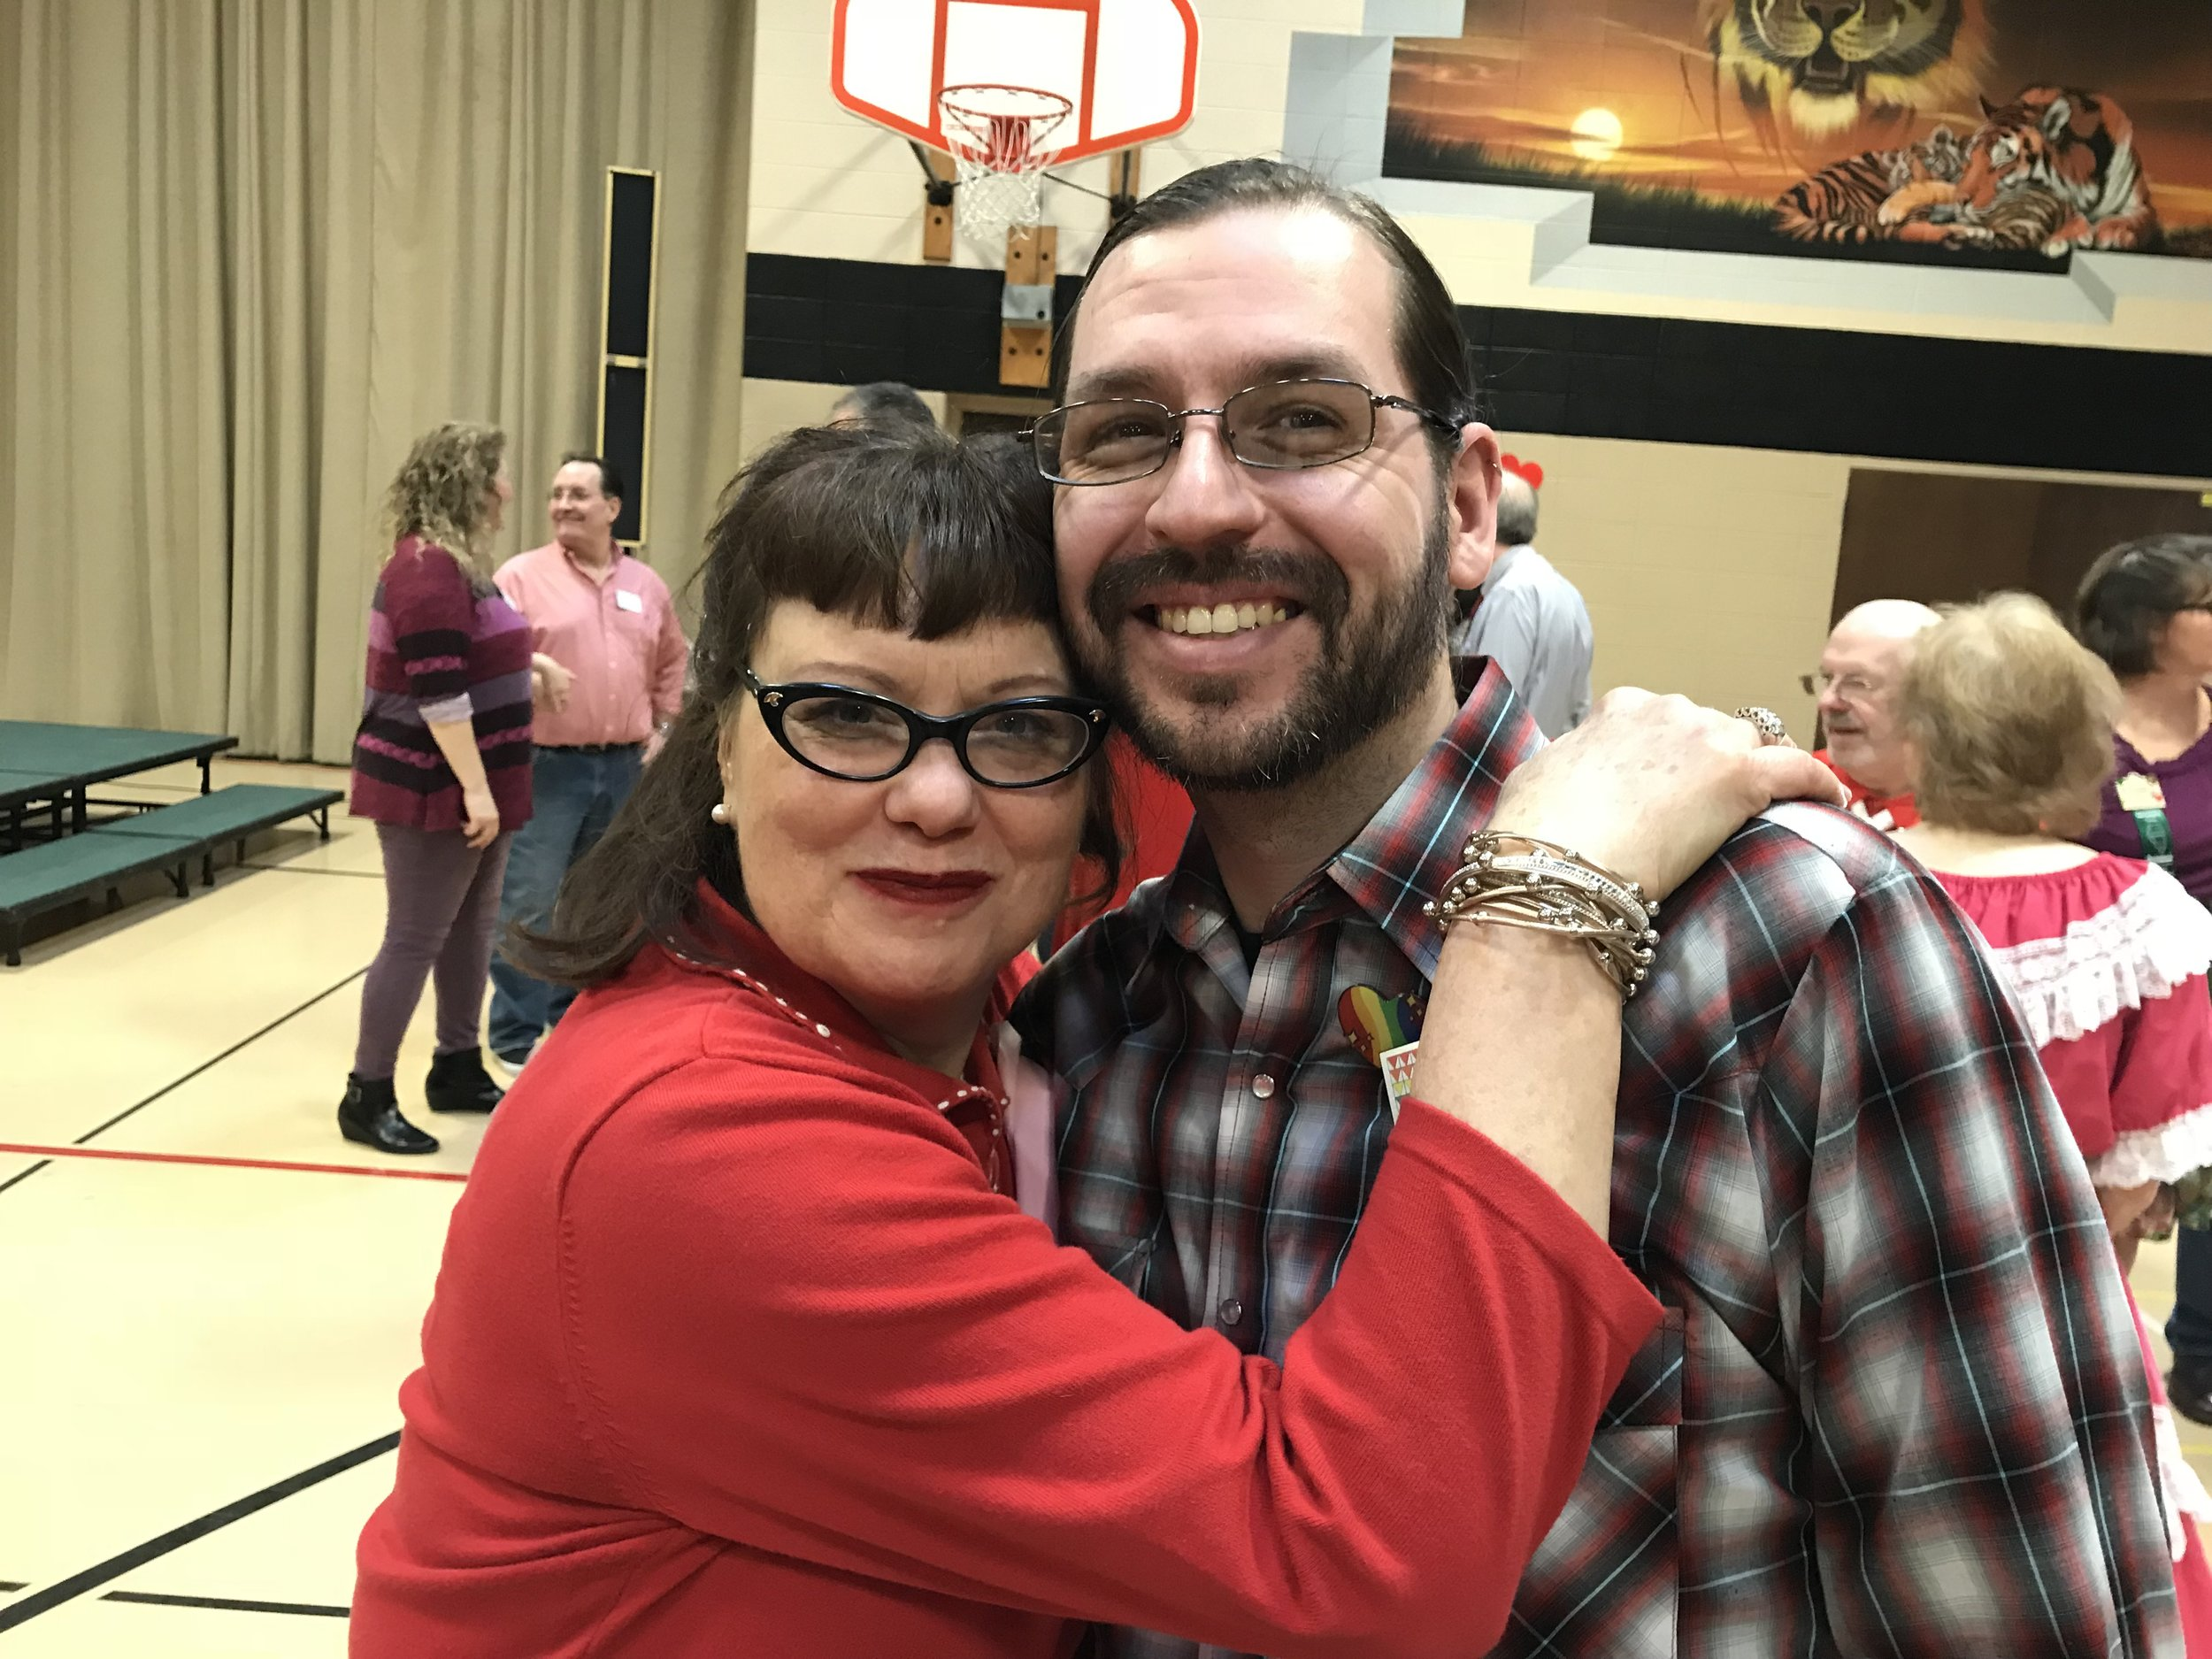 Diva and Moose at MCASD's 57th Annual Sweetheart Dance, 2/19/2017, at Trinity Lutheran Church in Roselle